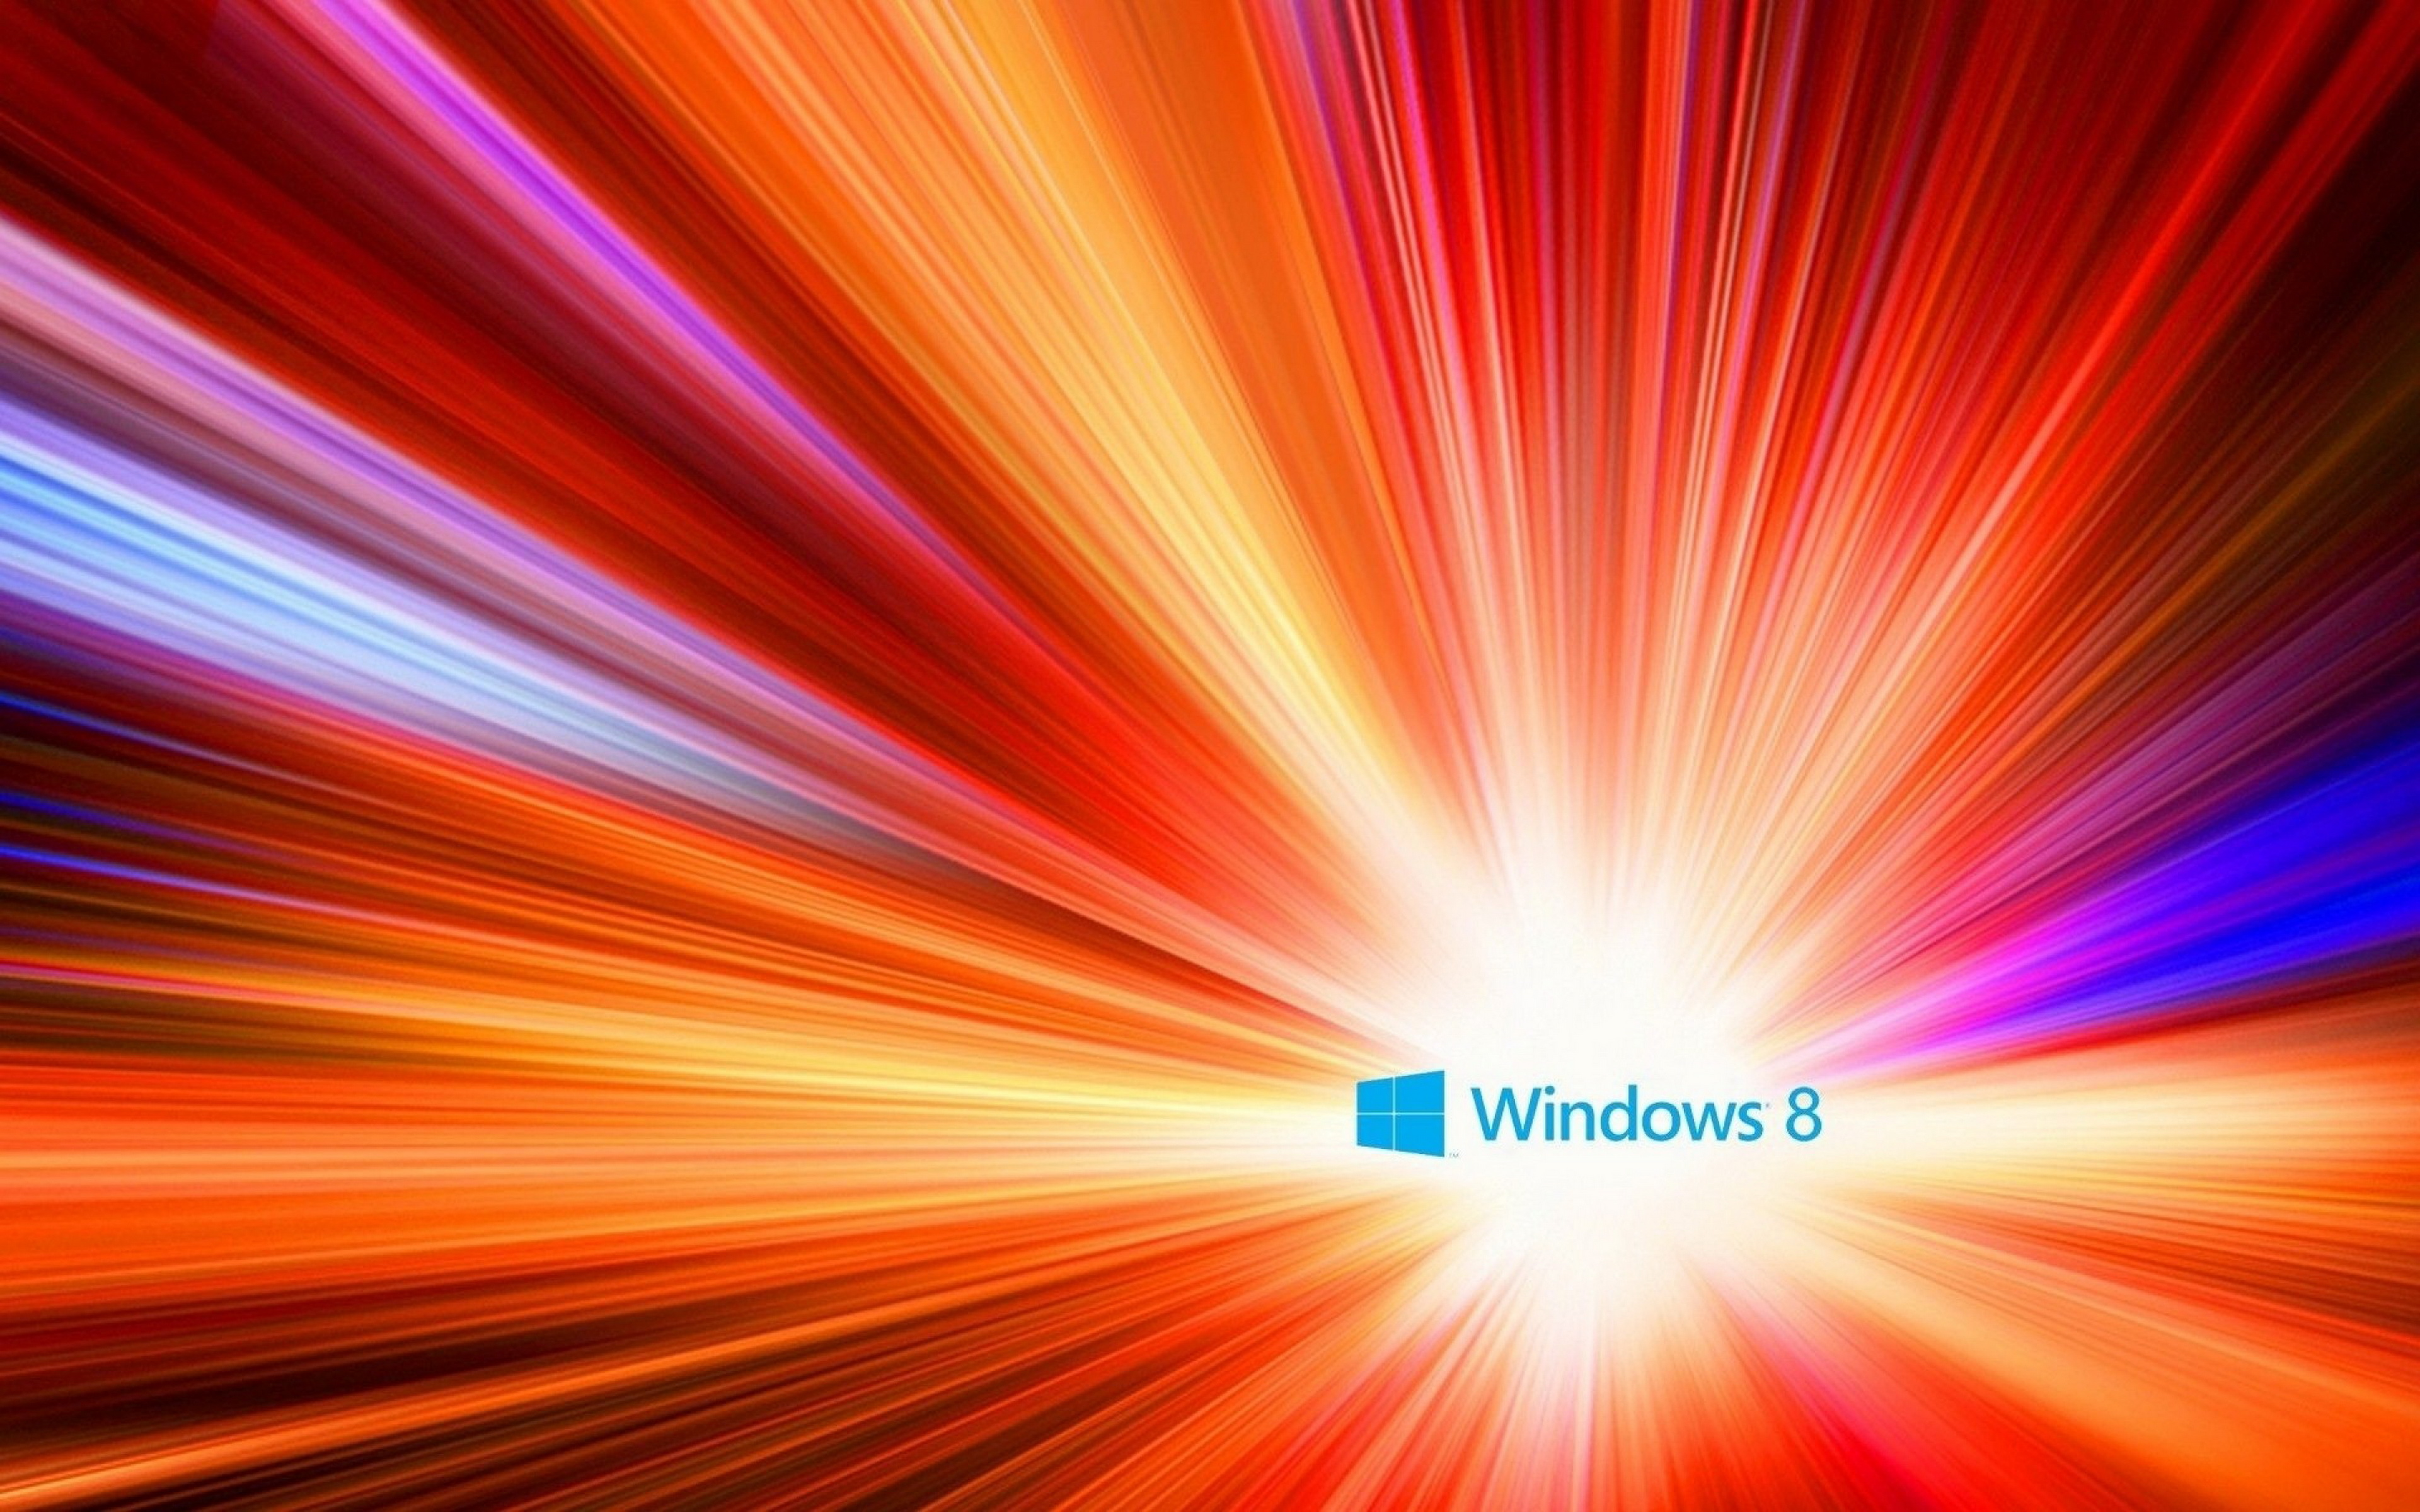 Windows 8 Backgrounds, Pictures, Images